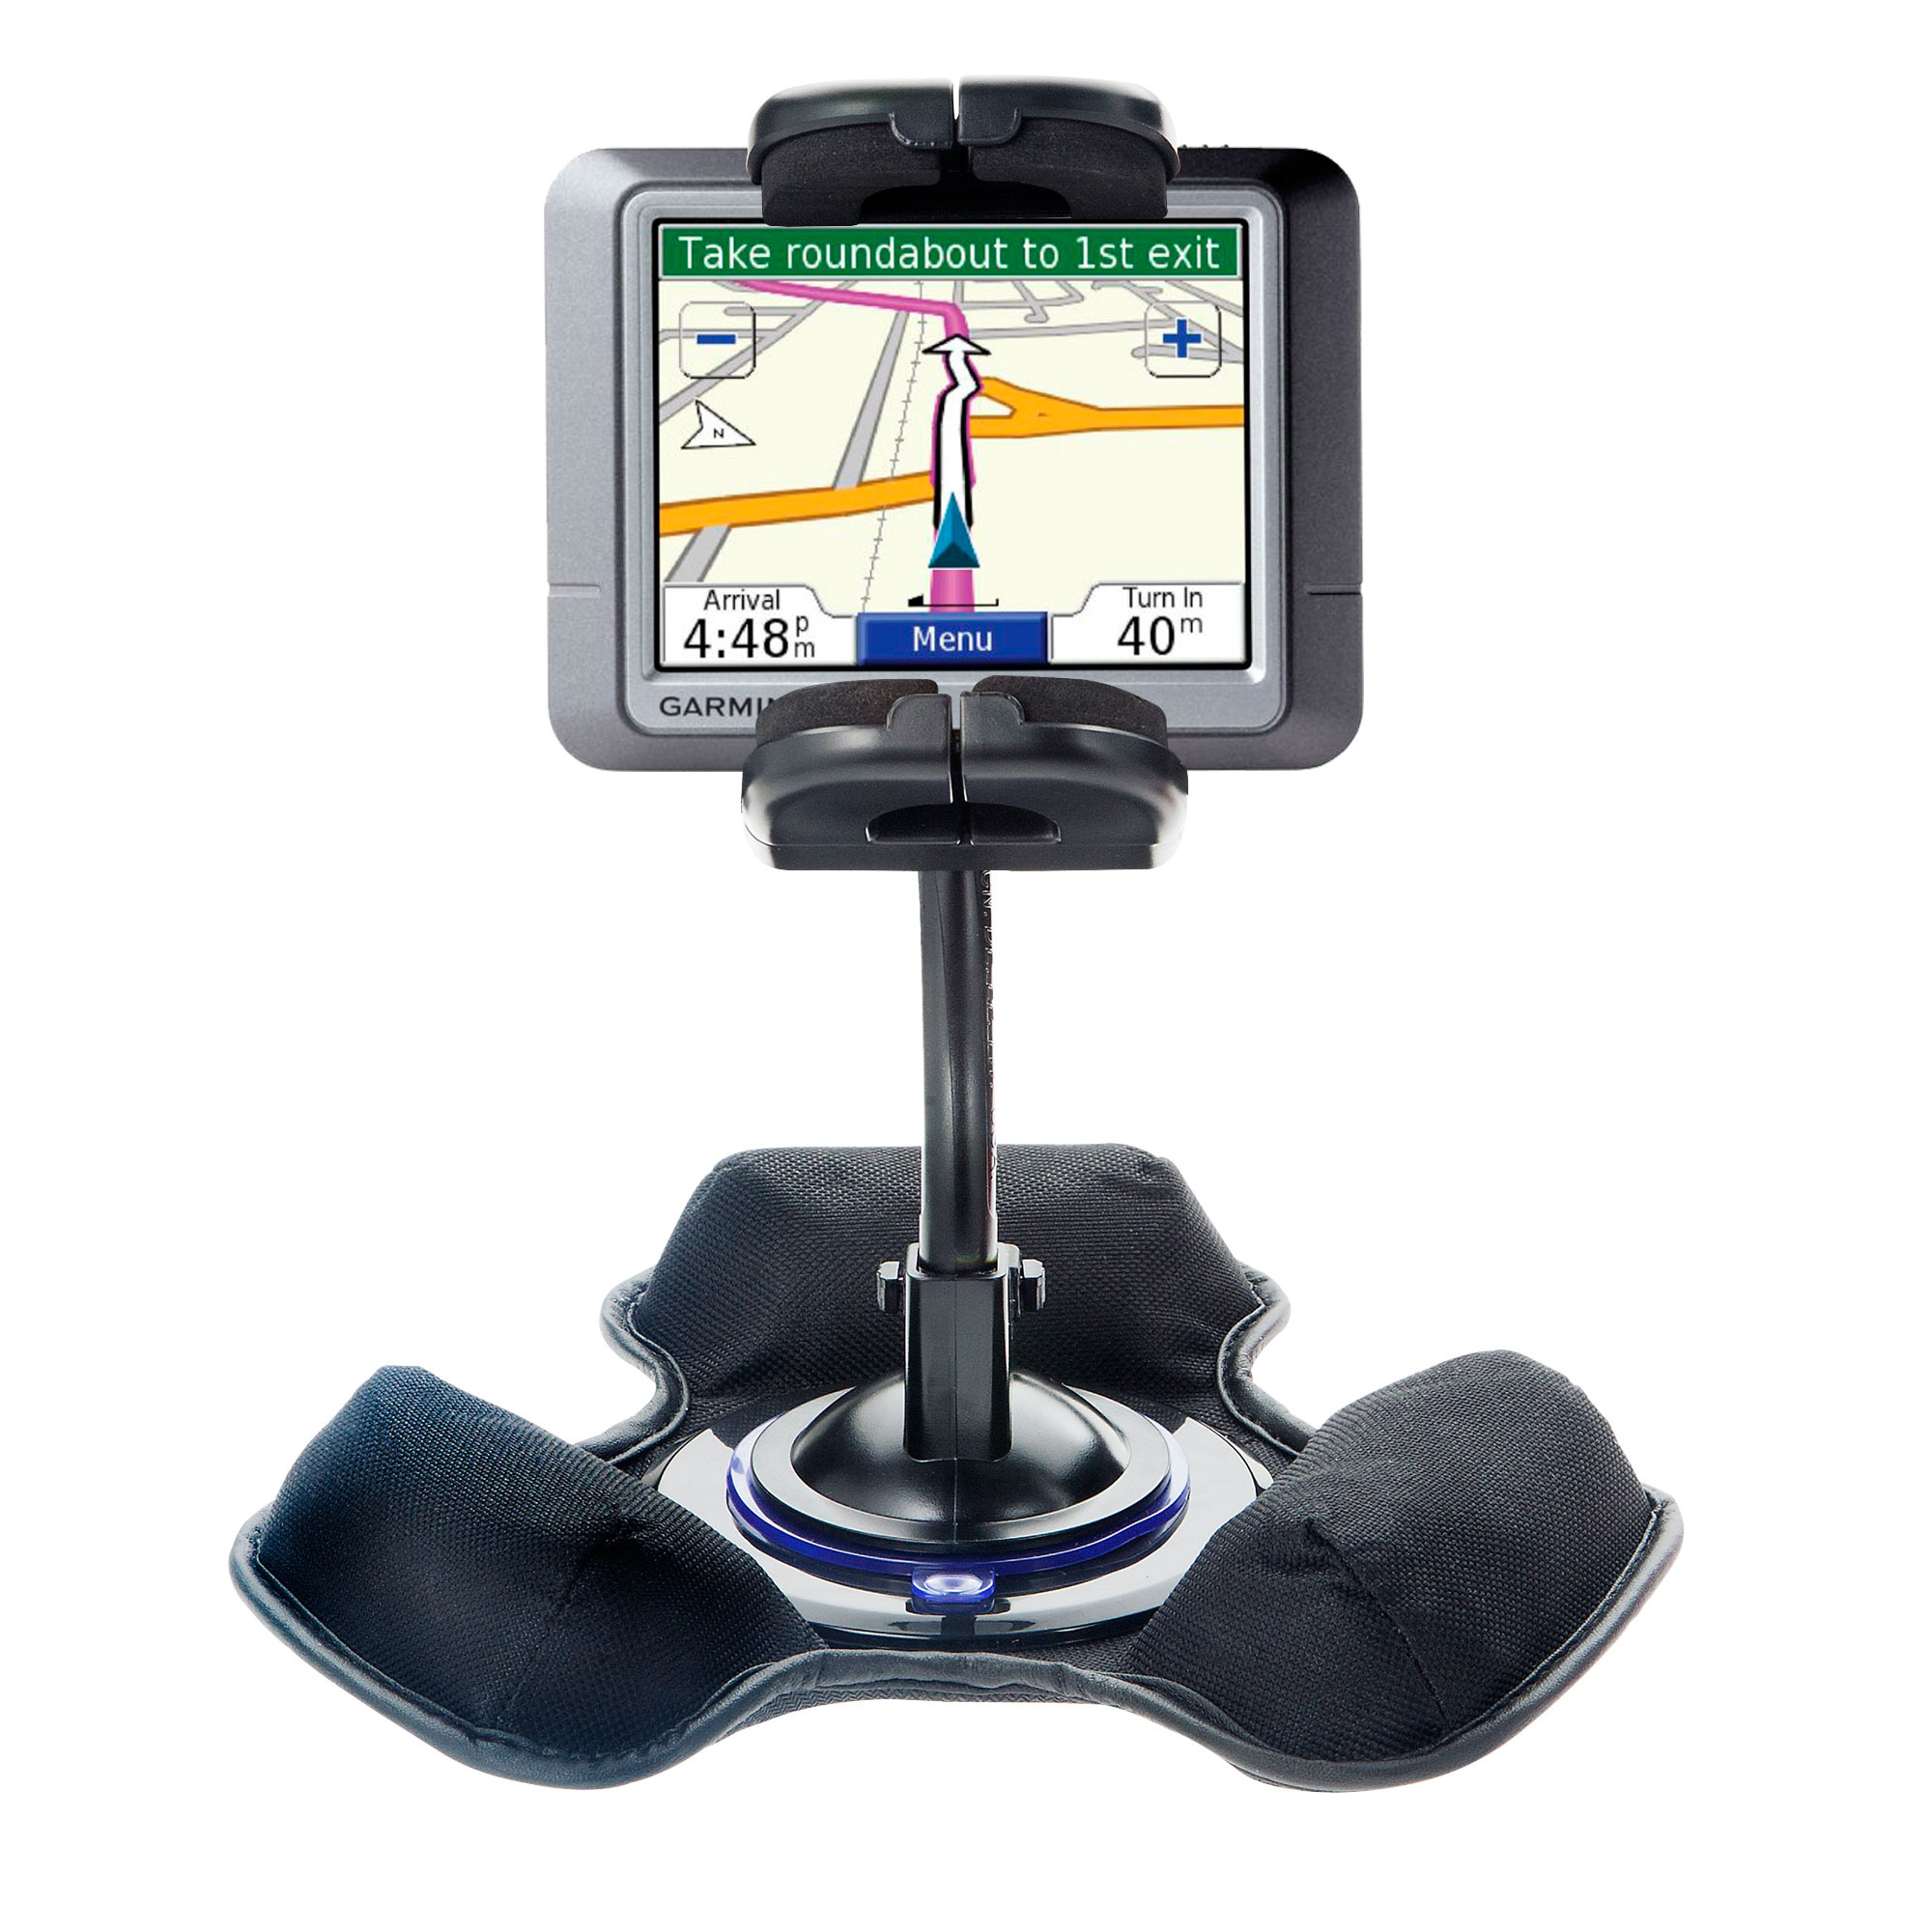 Dash and Windshield Holder compatible with the Garmin Nuvi 260